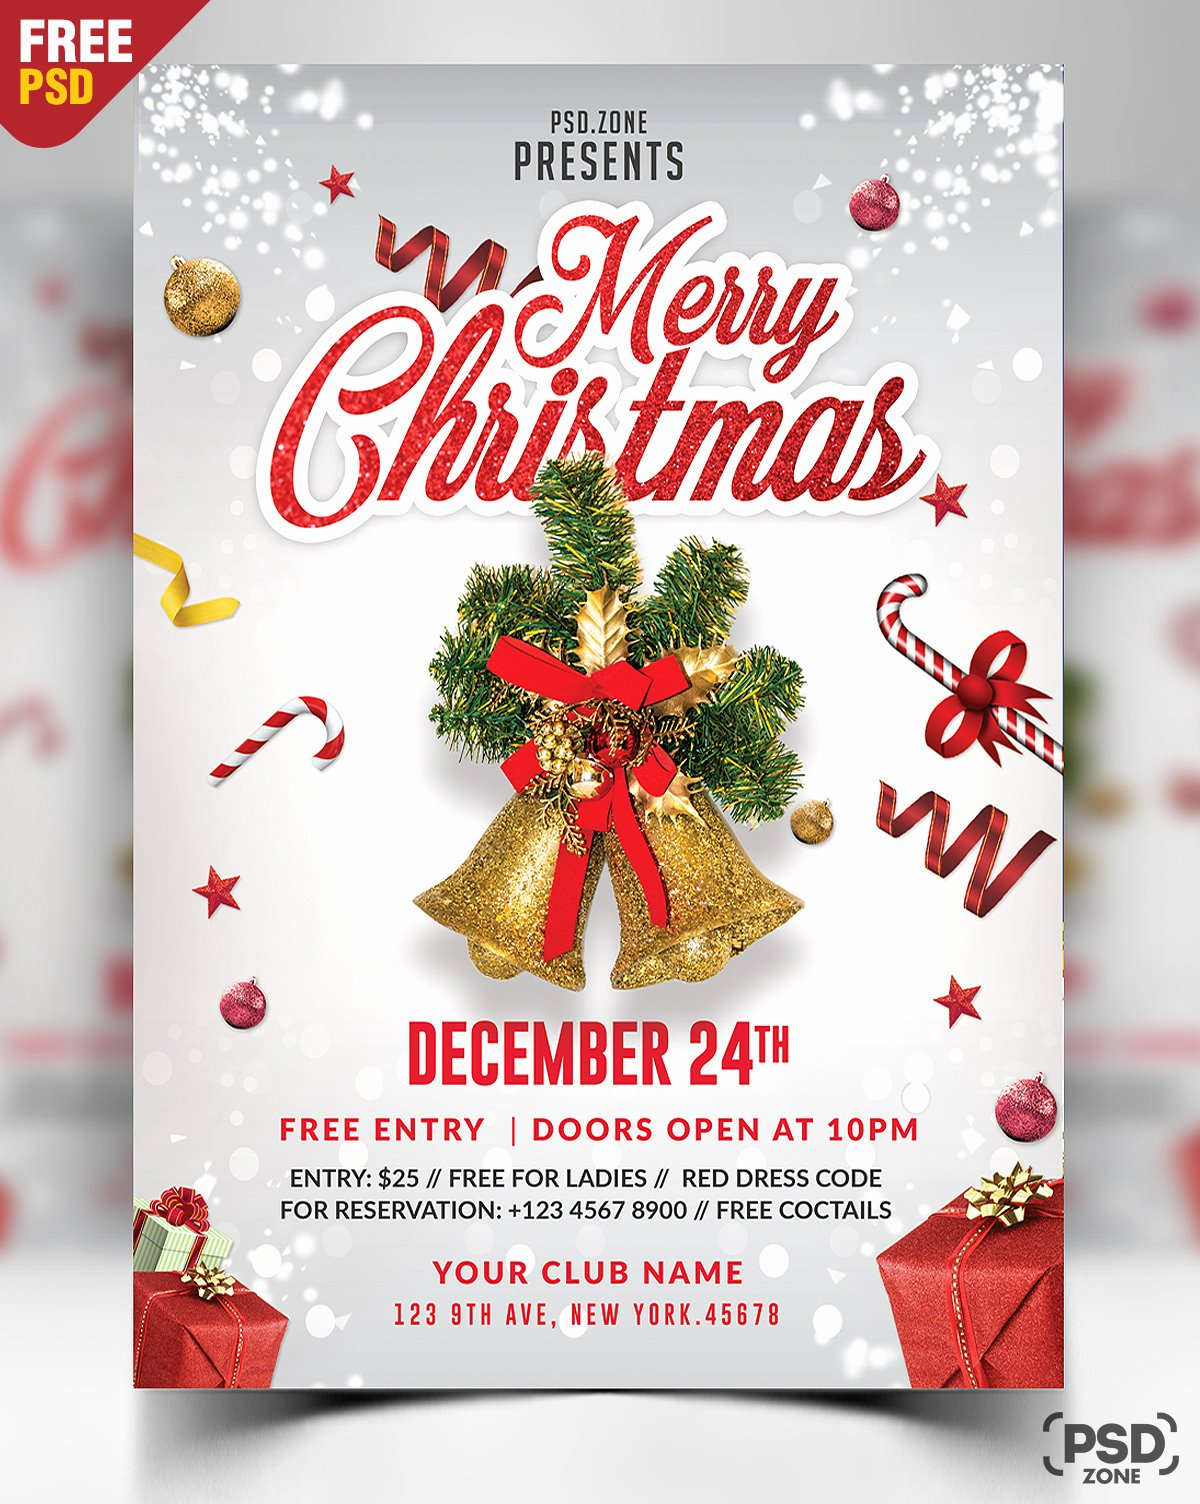 Free Christmas Flyer Templates Unique 160 Free Christmas Design Downloads Perfect for Your